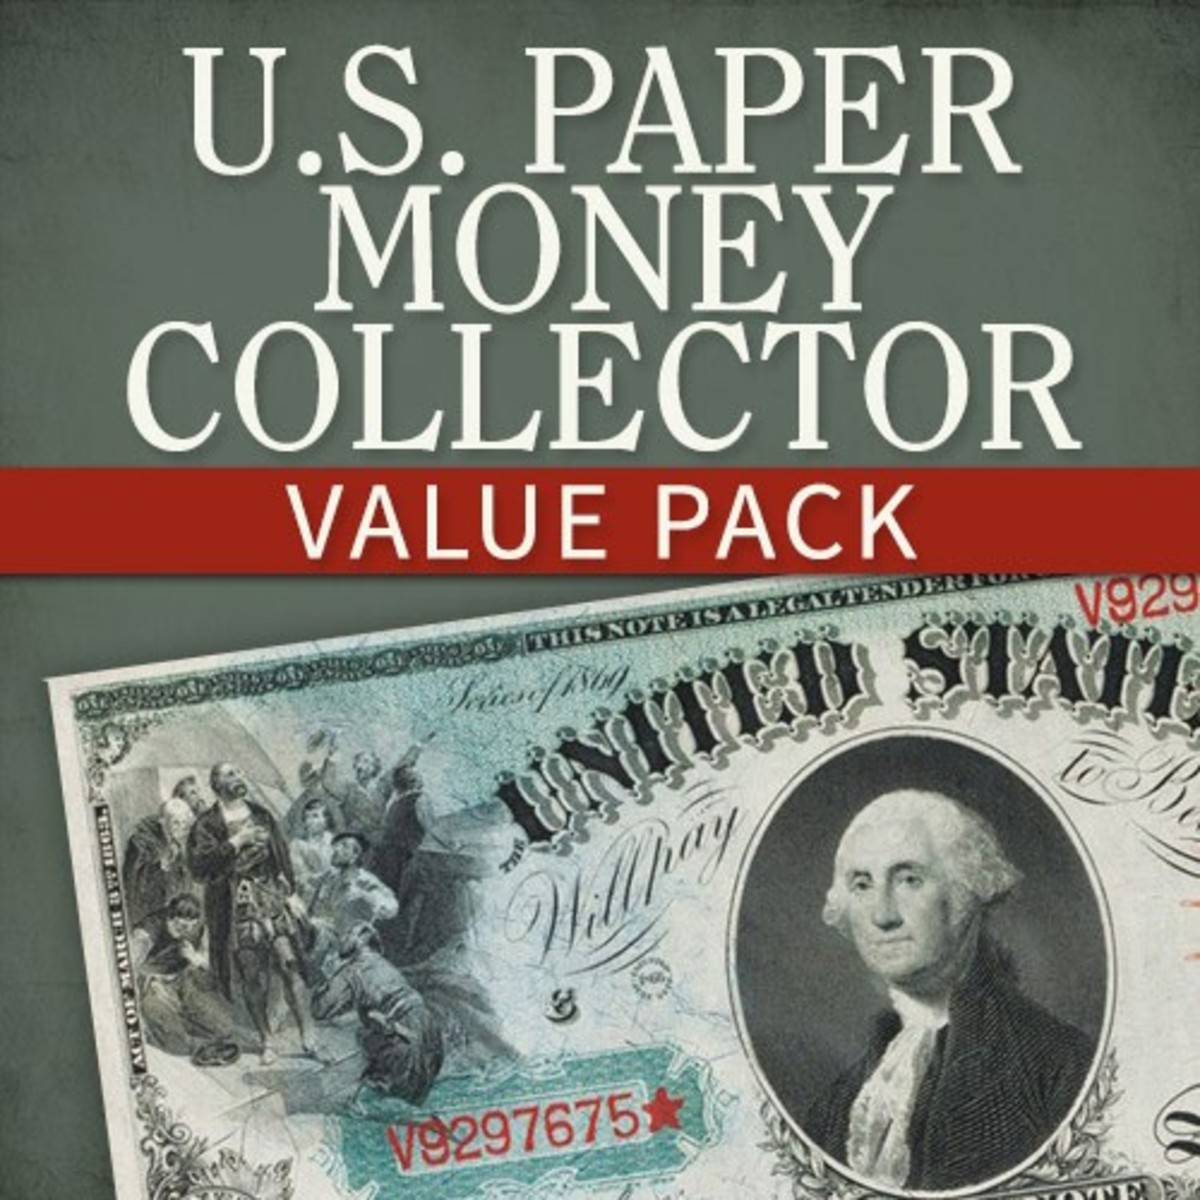 Starting a paper money collection? Check out this U.S. Paper Money Collector value pack!